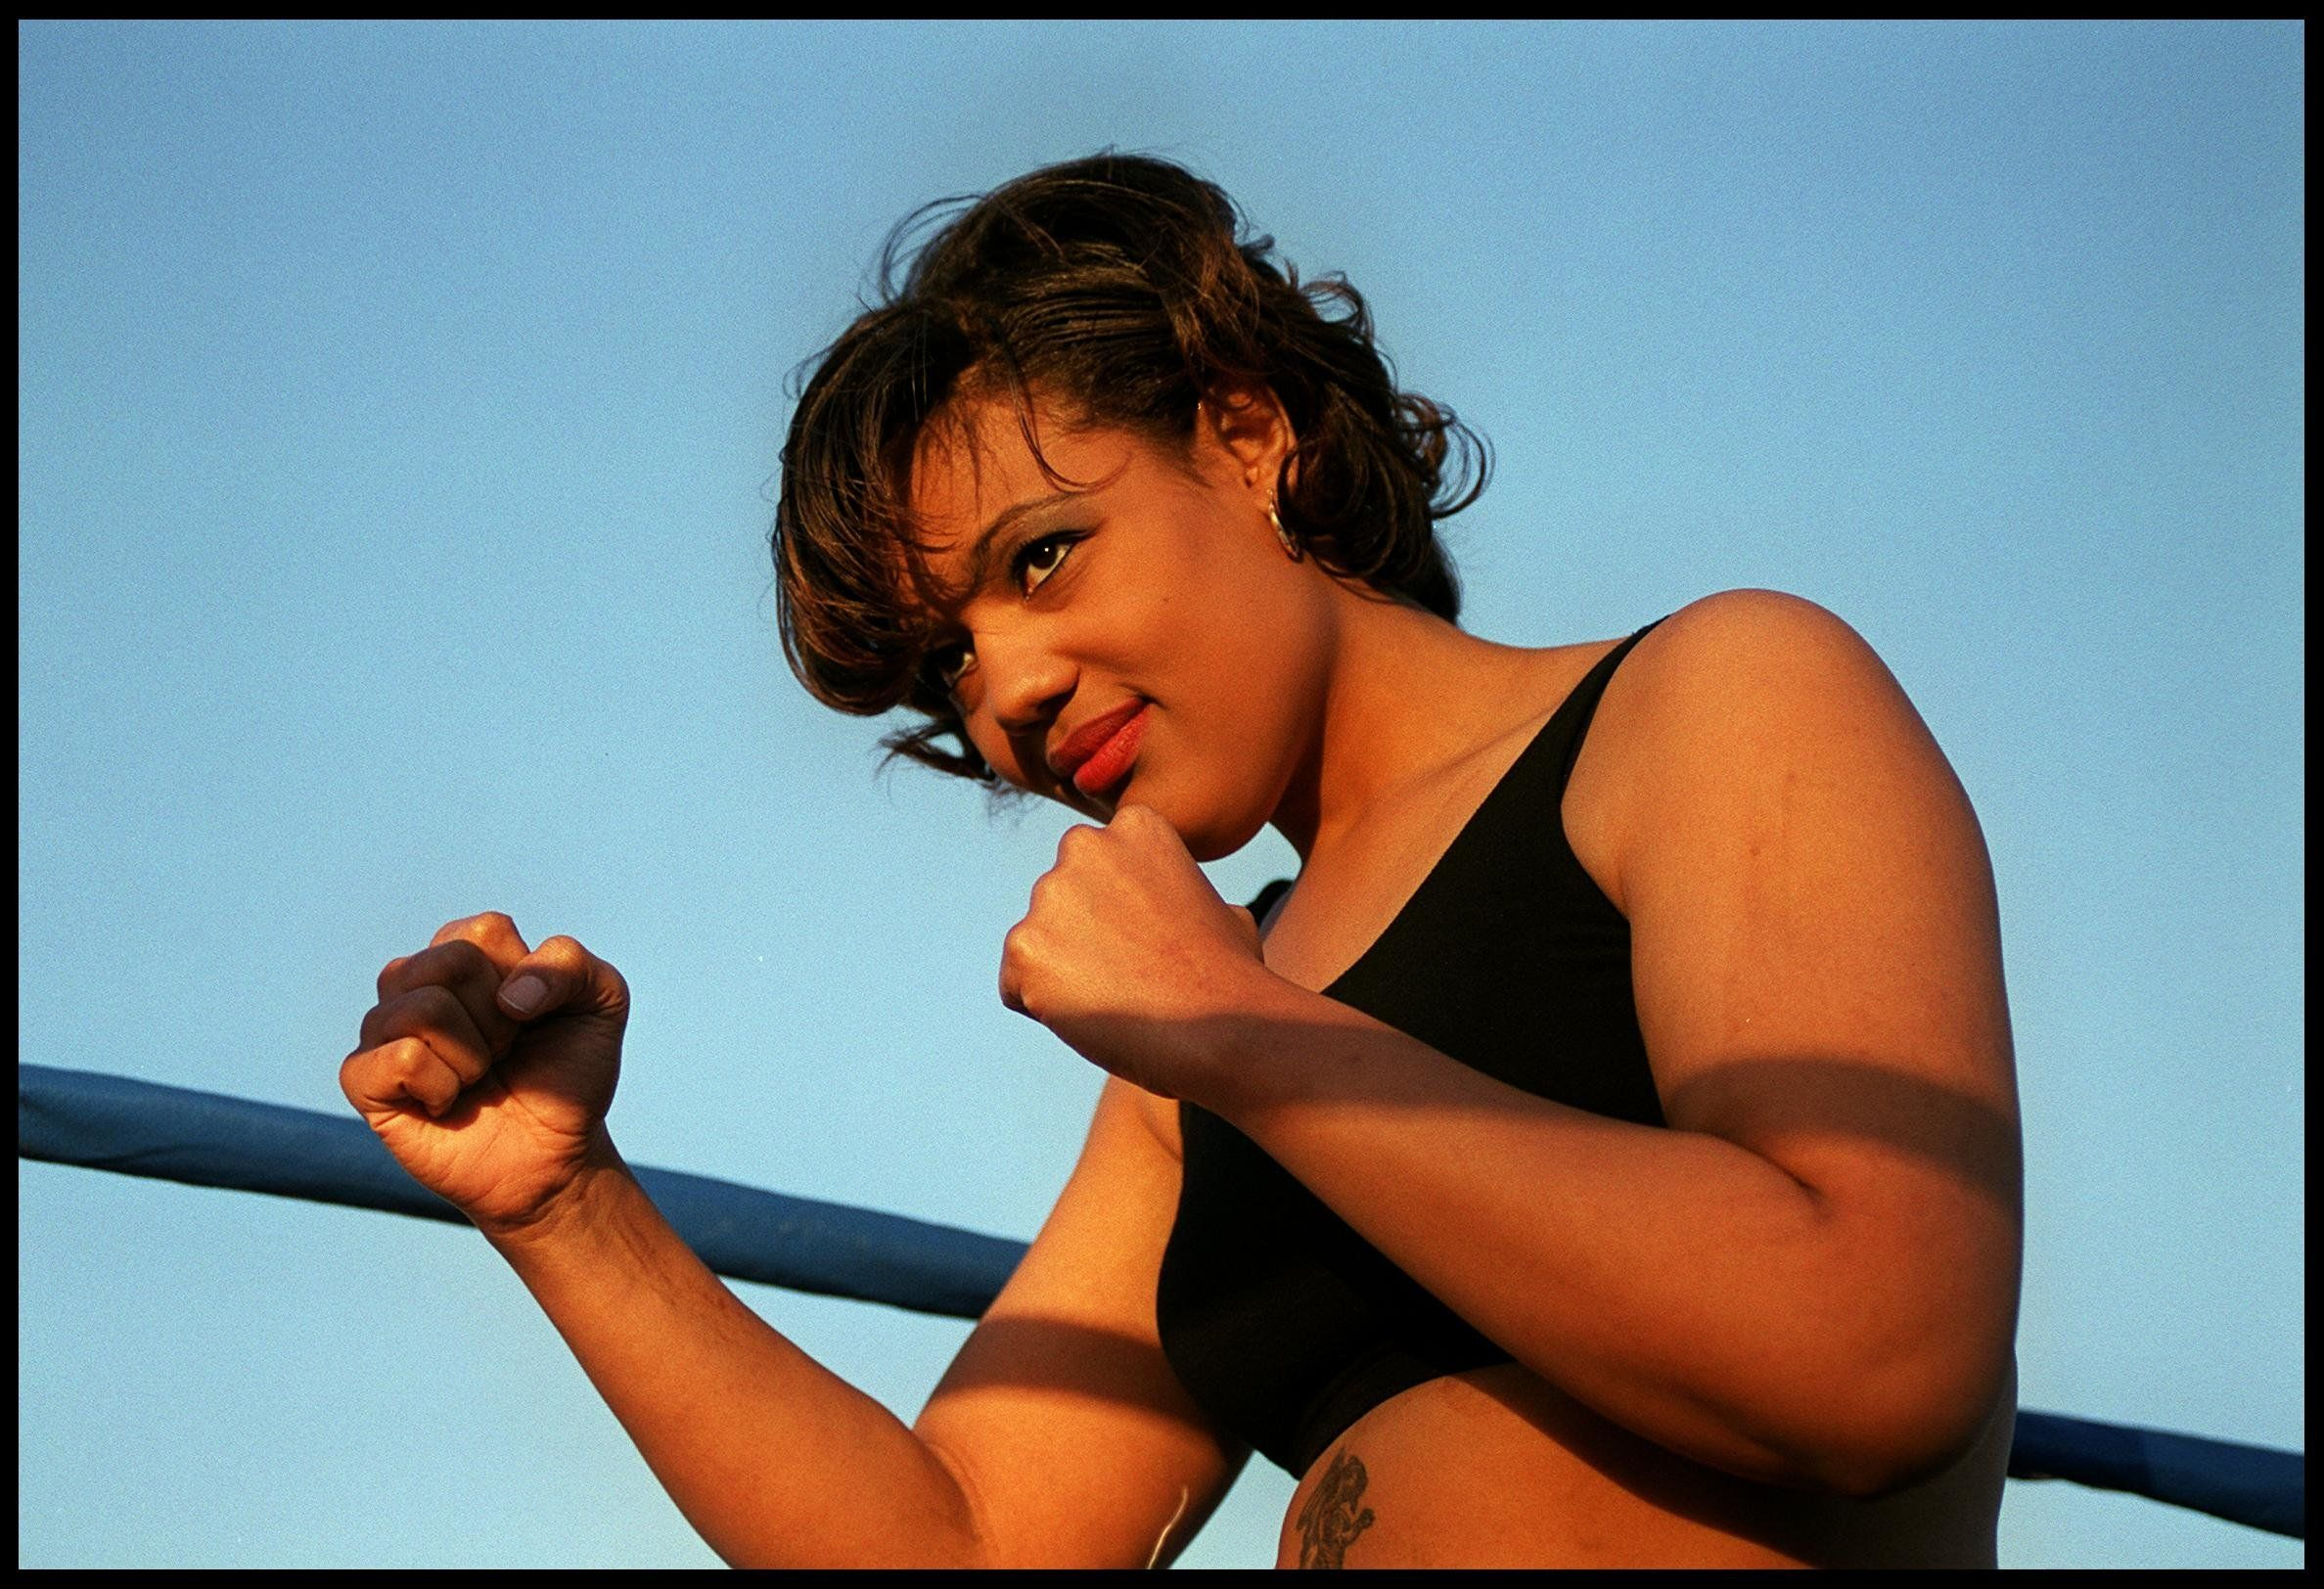 E366916. 03/31/00. Las Vegas, NV. Boxer Freeda Foreman daughter of George Foreman takes a break from training. Picture by DAN CALLISTER Online USA Inc